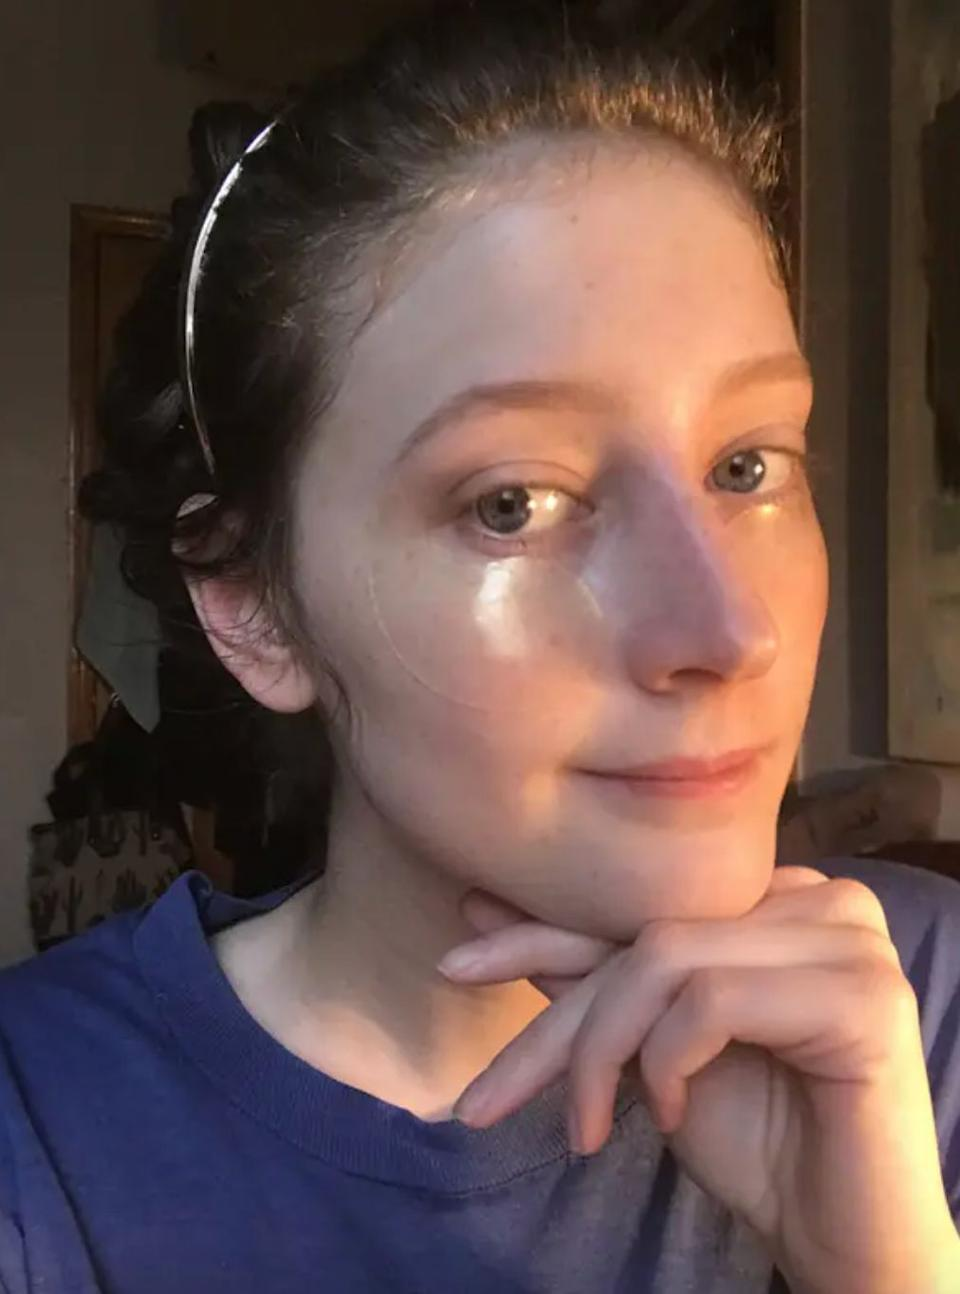 """They have gold and snail secretion filtrate to help depuff your poor undereyes on the cheap.<br /><strong><br />Promising review:</strong>""""Holy moly! I don't know what to expect, but I certainly wasn't expecting them to be this immediately incredible! They're so lovely and luxurious, but I assumed that's where it would end. I was wrong. After a half-hour I removed them and my dark, puffy, and wrinkly under eyes were replaced with skin like I had when I was 16. These are awesome!"""" —<a href=""""https://www.amazon.com/dp/B014BVW62S?tag=huffpost-bfsyndication-20&ascsubtag=5876069%2C20%2C48%2Cd%2C0%2C0%2C0%2C962%3A1%3B901%3A2%3B900%3A2%3B974%3A3%3B975%3A2%3B982%3A2%2C0%2C0"""" target=""""_blank"""" rel=""""noopener noreferrer"""">Danielle Burge</a><br /><br /><strong>Get a pack of 60 from Amazon for <a href=""""https://www.amazon.com/dp/B014BVW62S?tag=huffpost-bfsyndication-20&ascsubtag=5876069%2C20%2C48%2Cd%2C0%2C0%2C0%2C962%3A1%3B901%3A2%3B900%3A2%3B974%3A3%3B975%3A2%3B982%3A2%2C0%2C0"""" target=""""_blank"""" rel=""""noopener noreferrer"""">$9.69</a>.</strong>"""